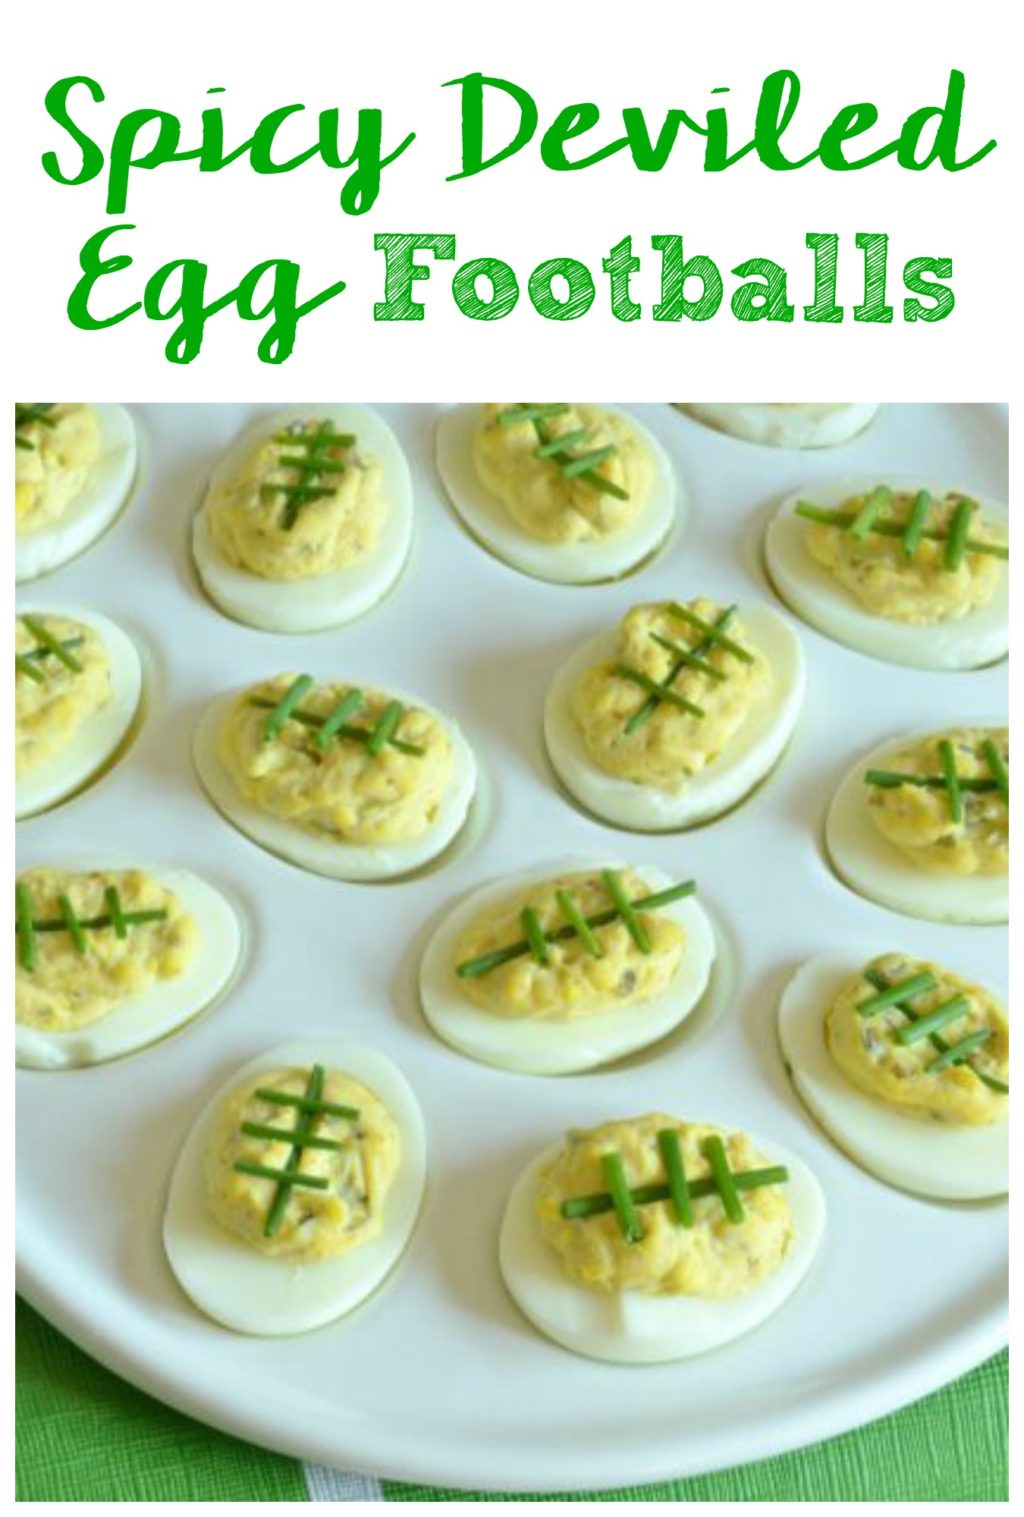 These Spicy Deviled Egg Footballs are the perfect appetizer recipe for your Game Day party! They can be customized to be as spicy (or mild) as you want!